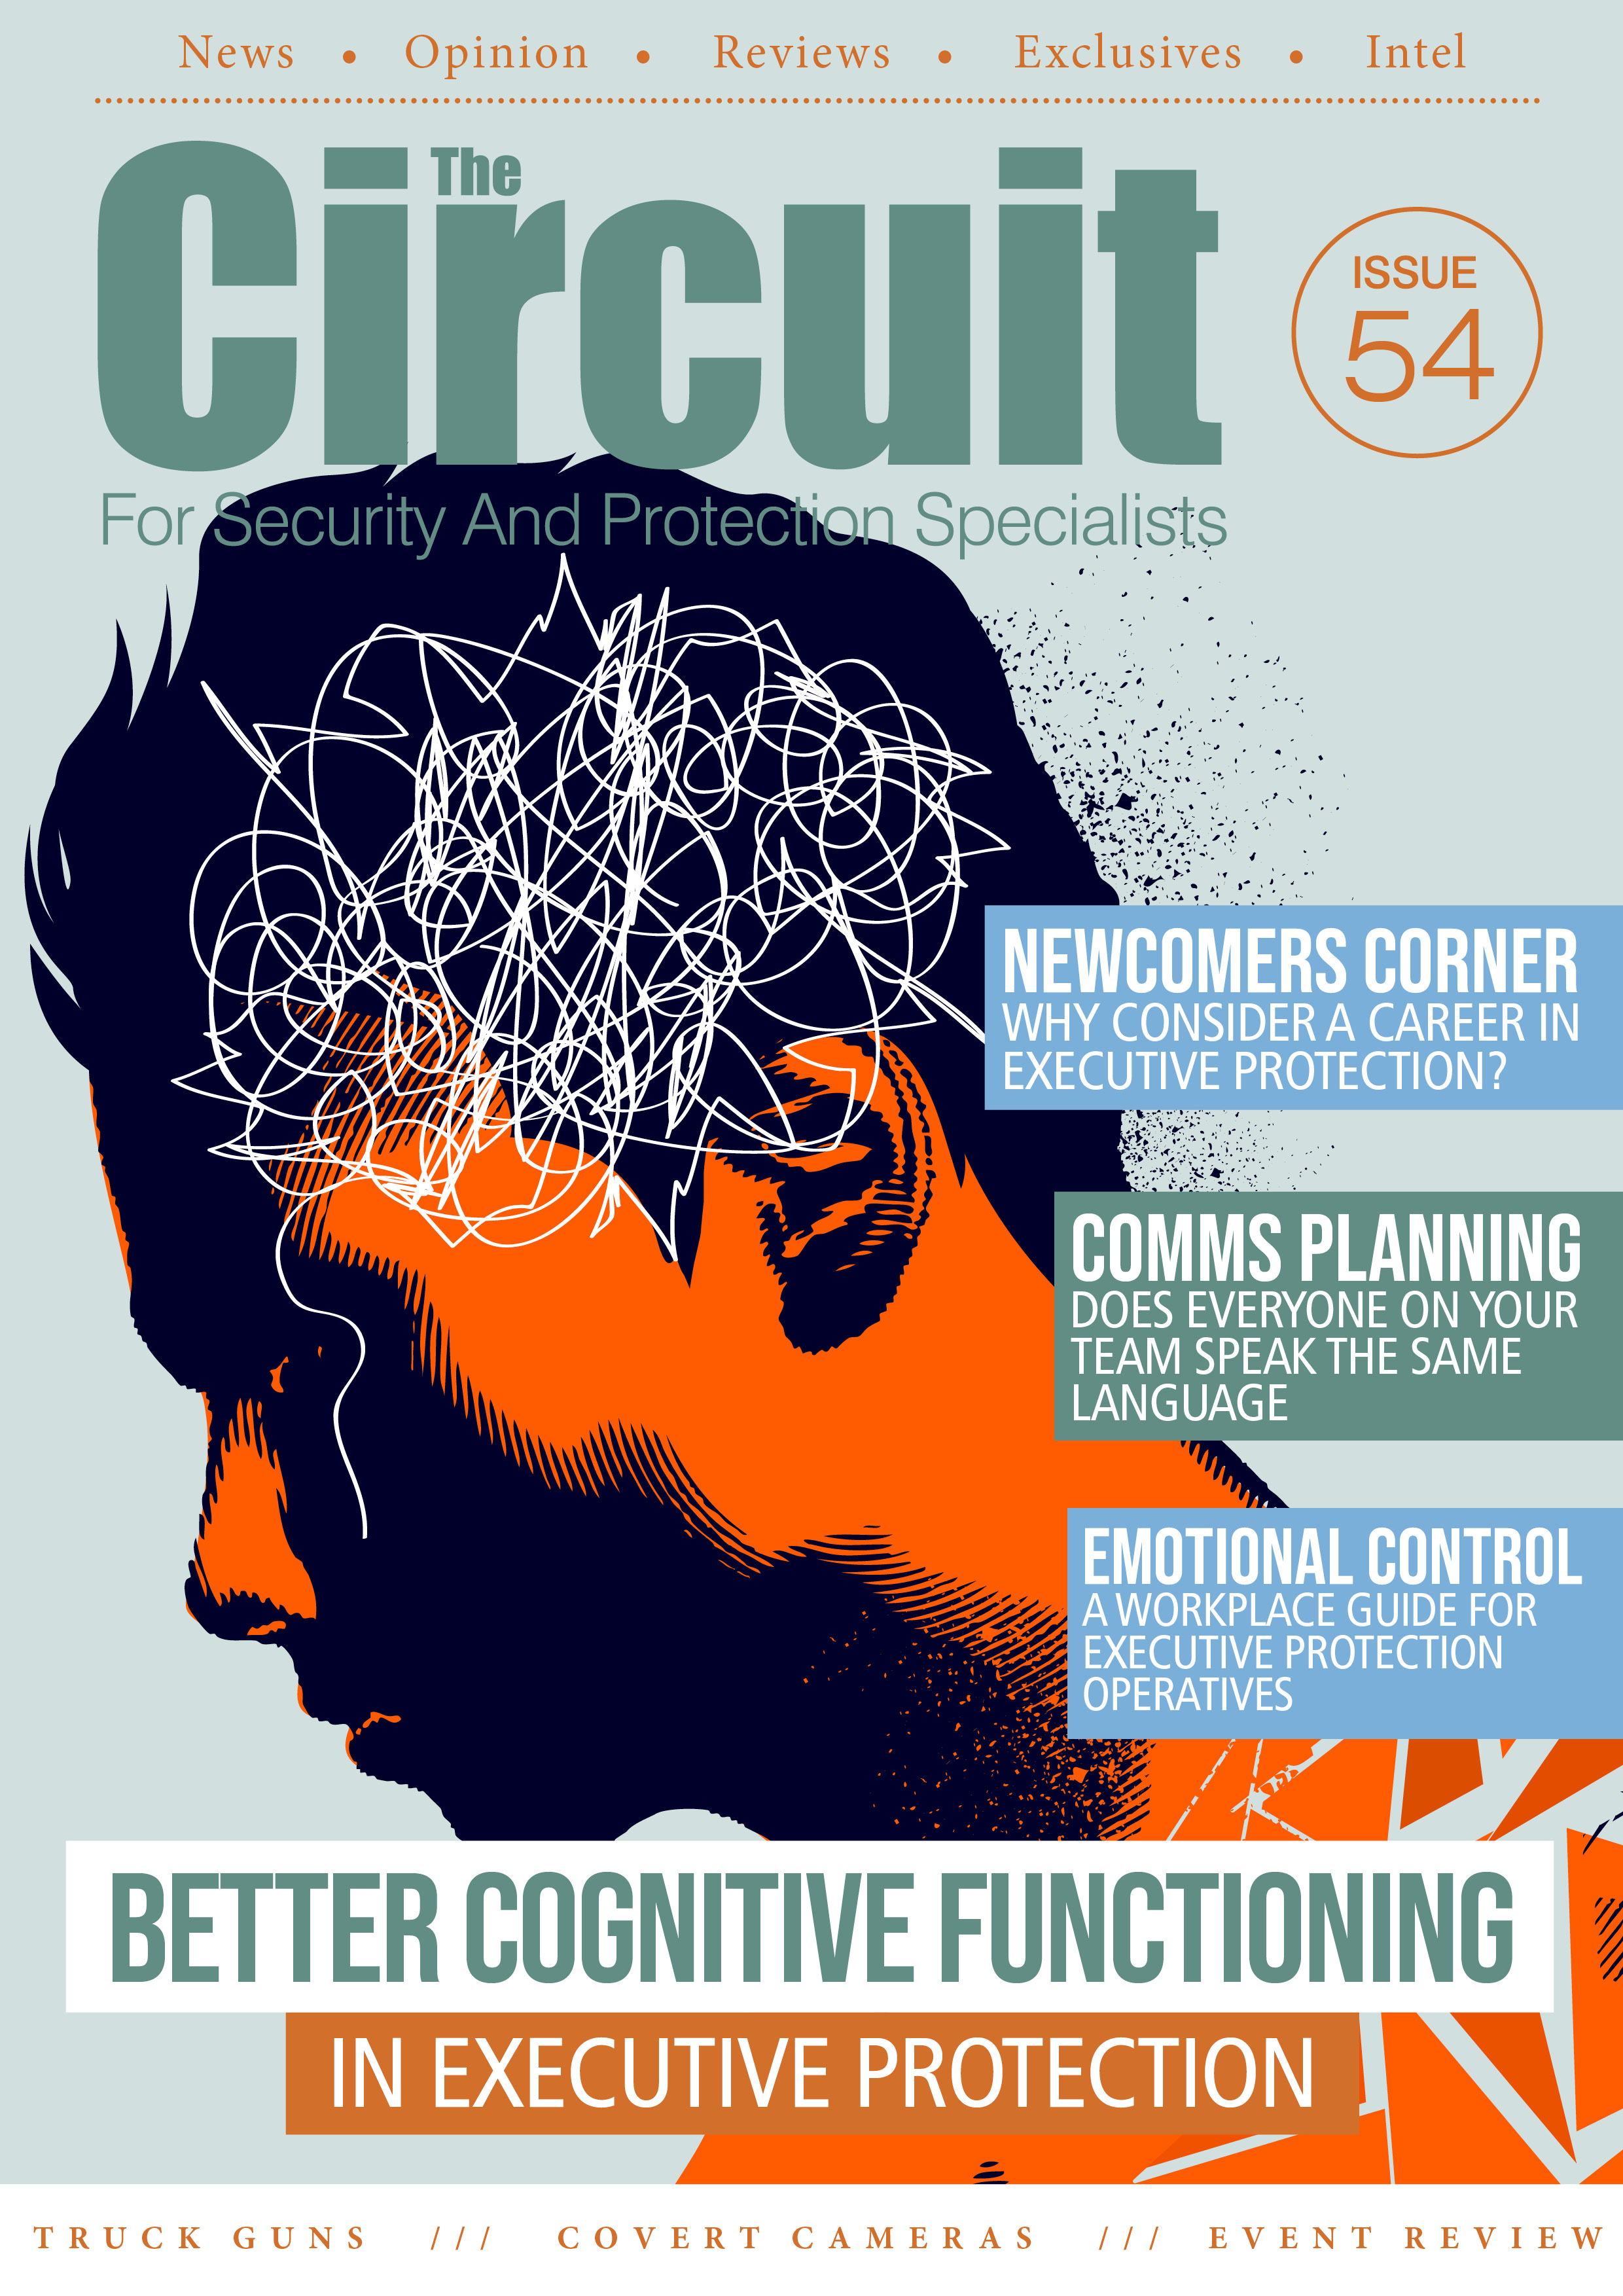 Cognitive Functioning on Issue 54